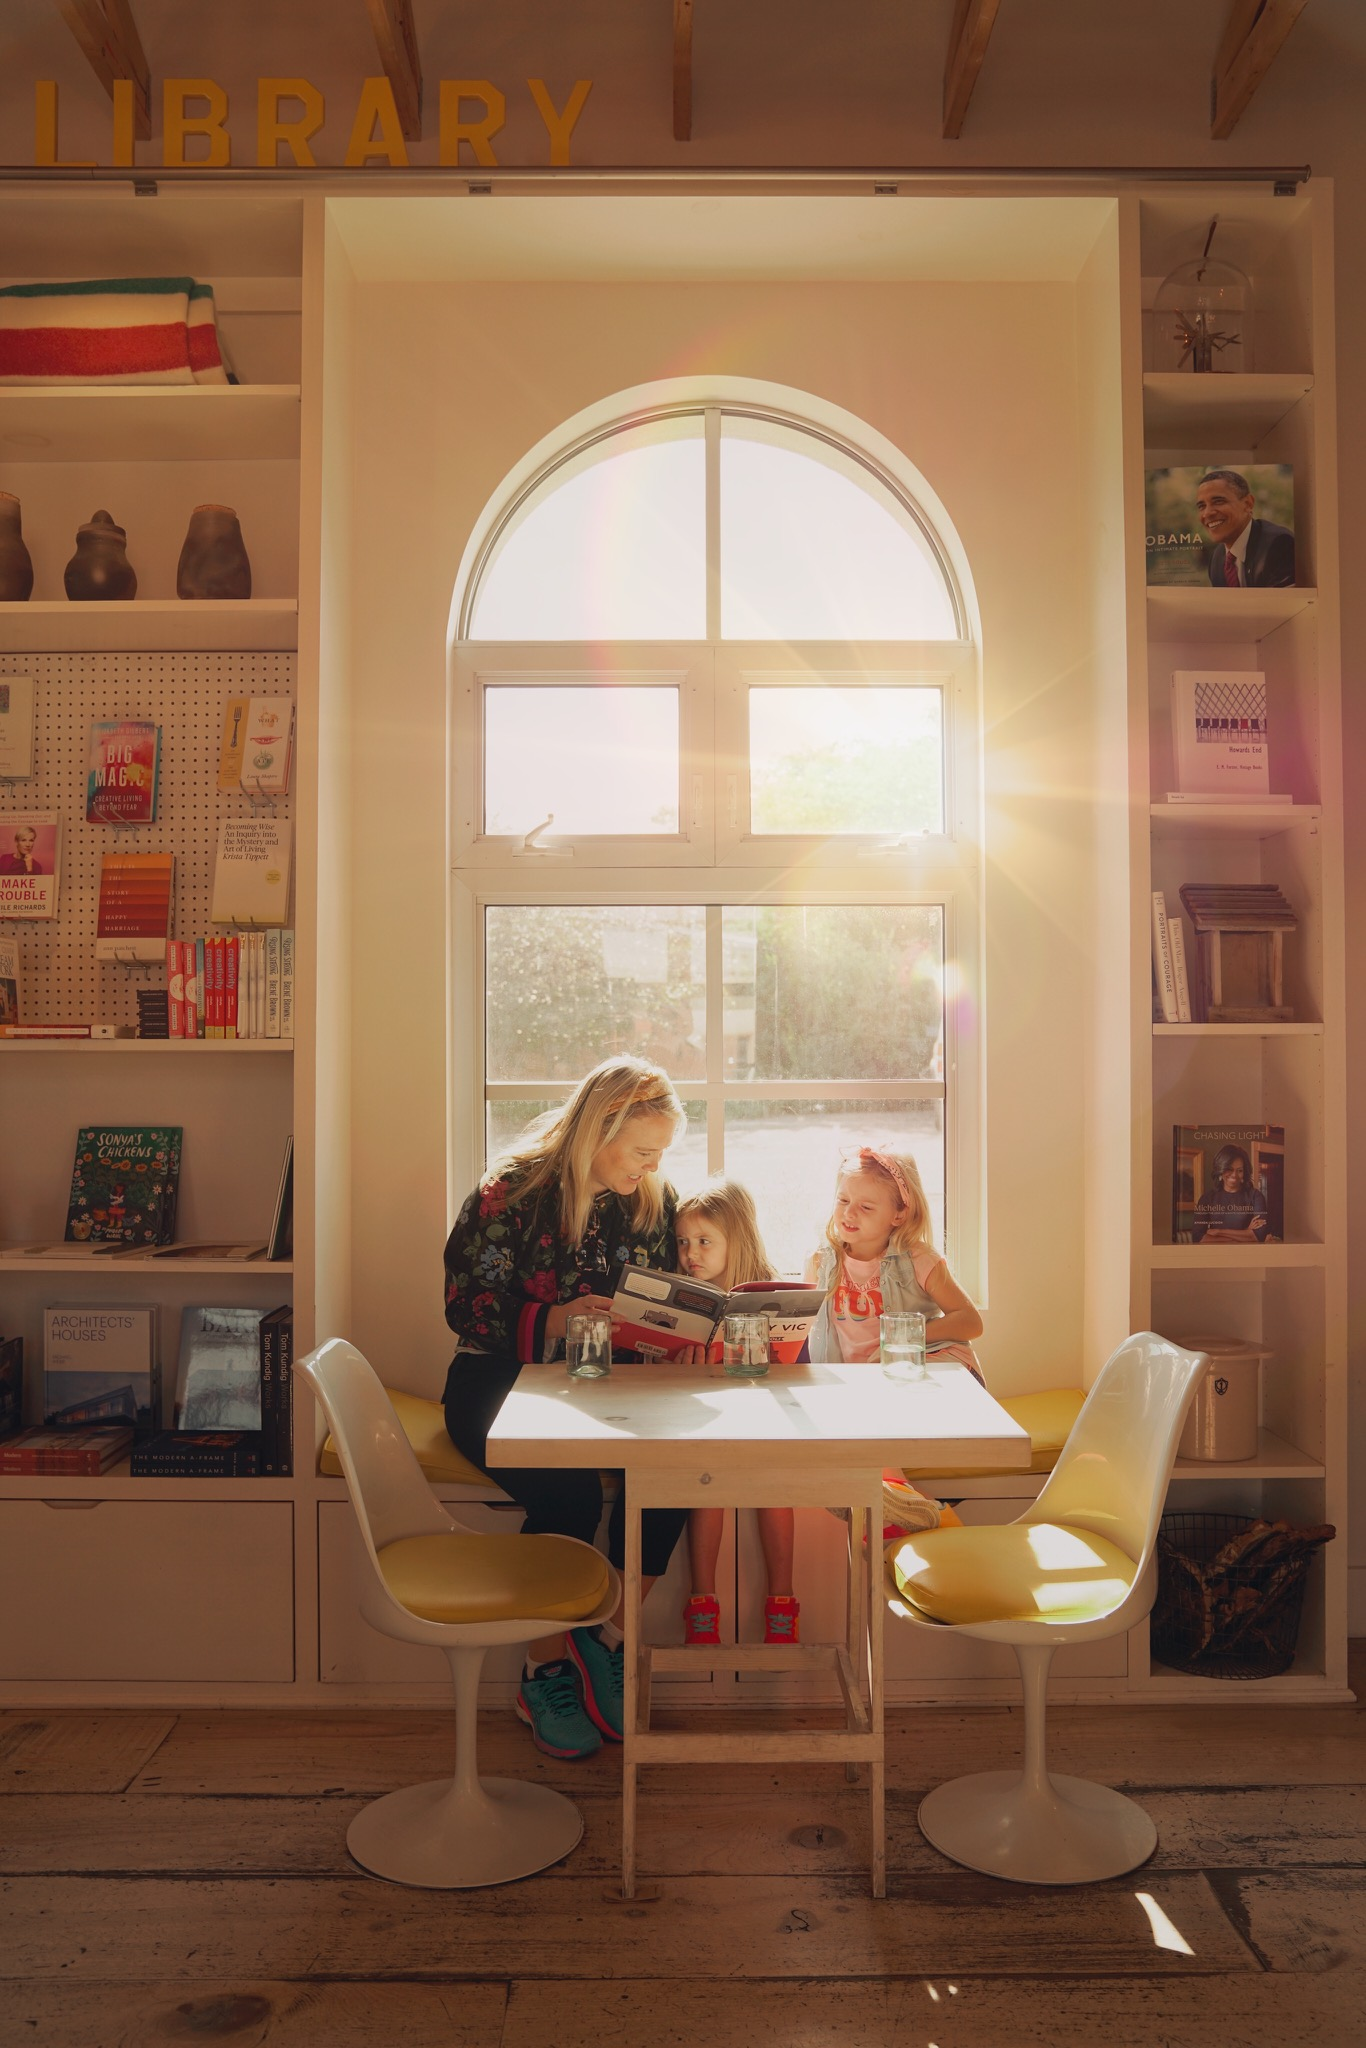 Two children and a woman reading a book